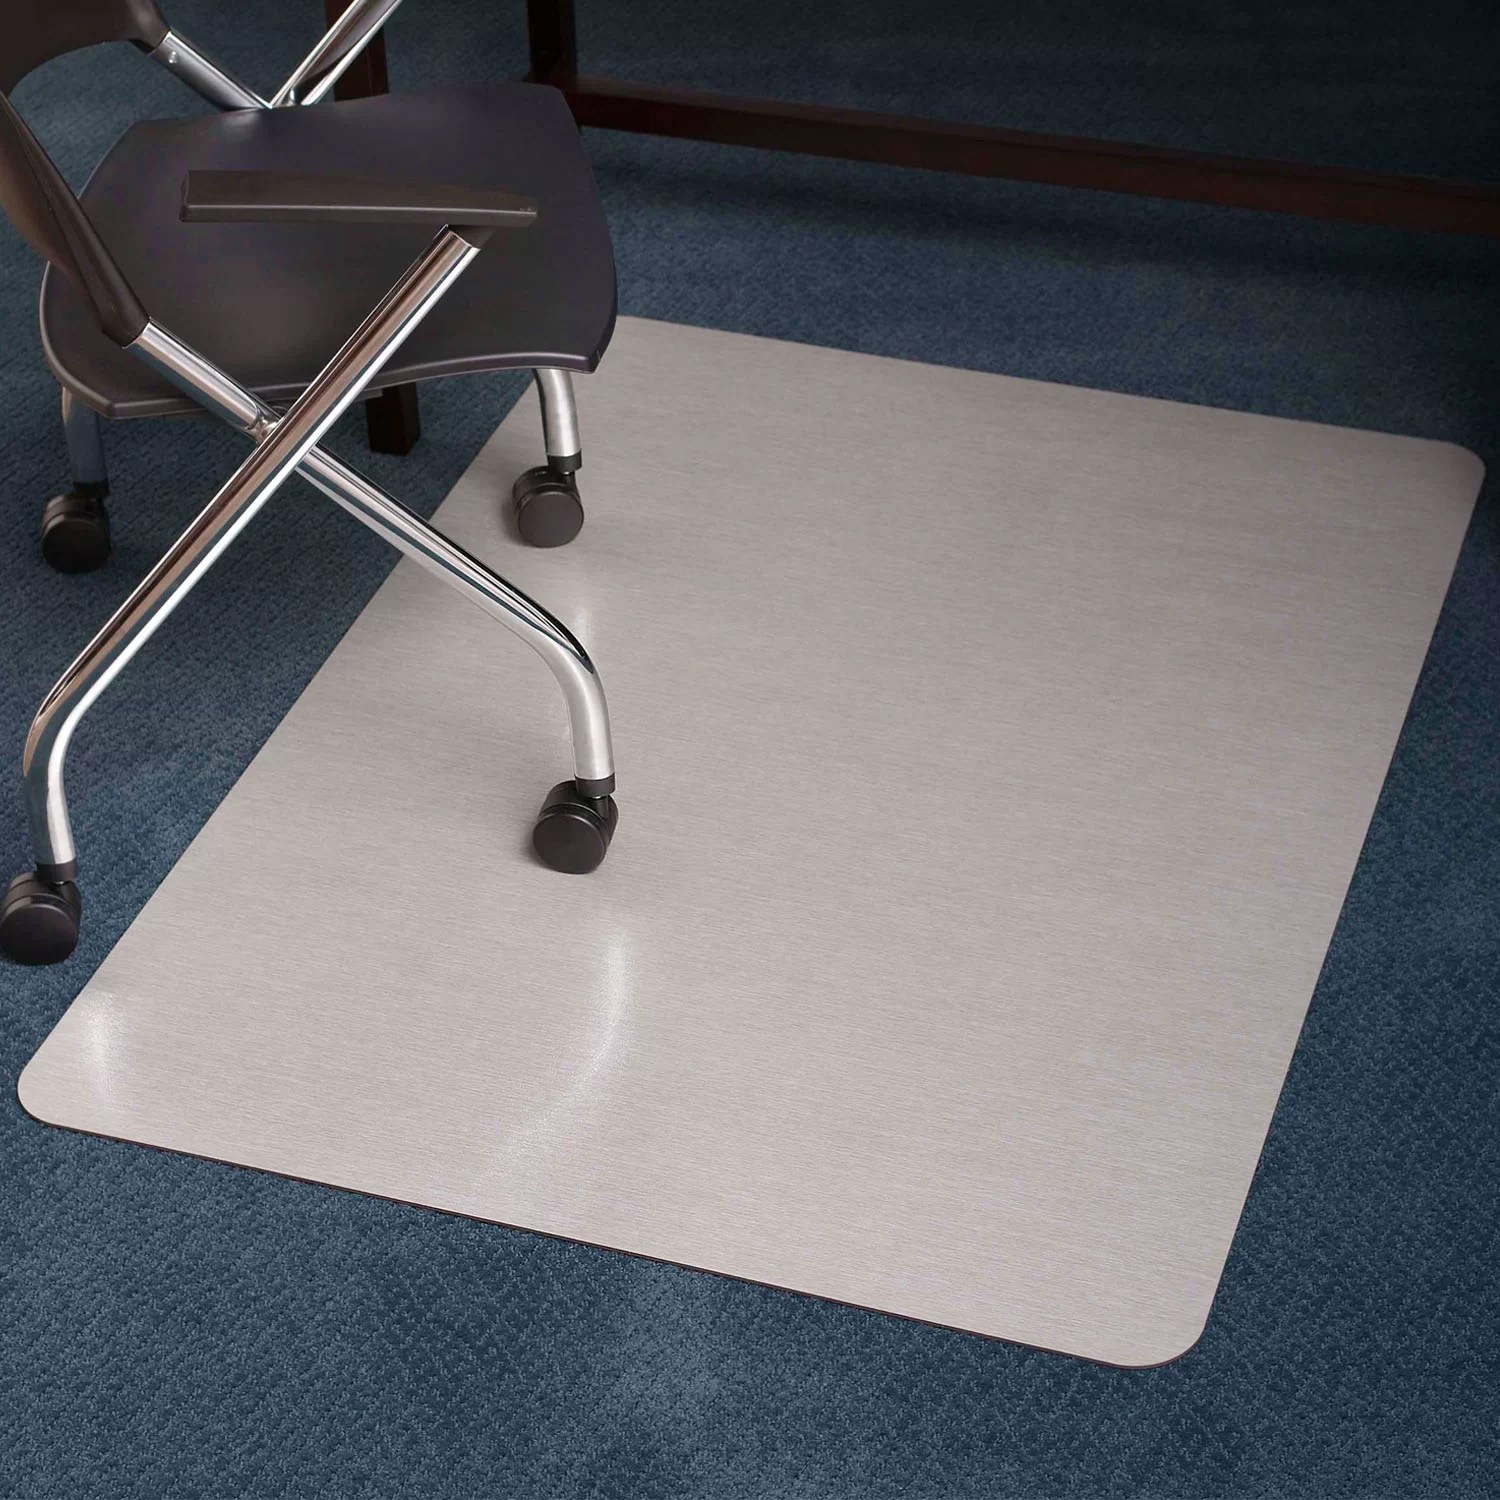 Es Robbins Chair Mat Brushed Stainless Design Chair Mat